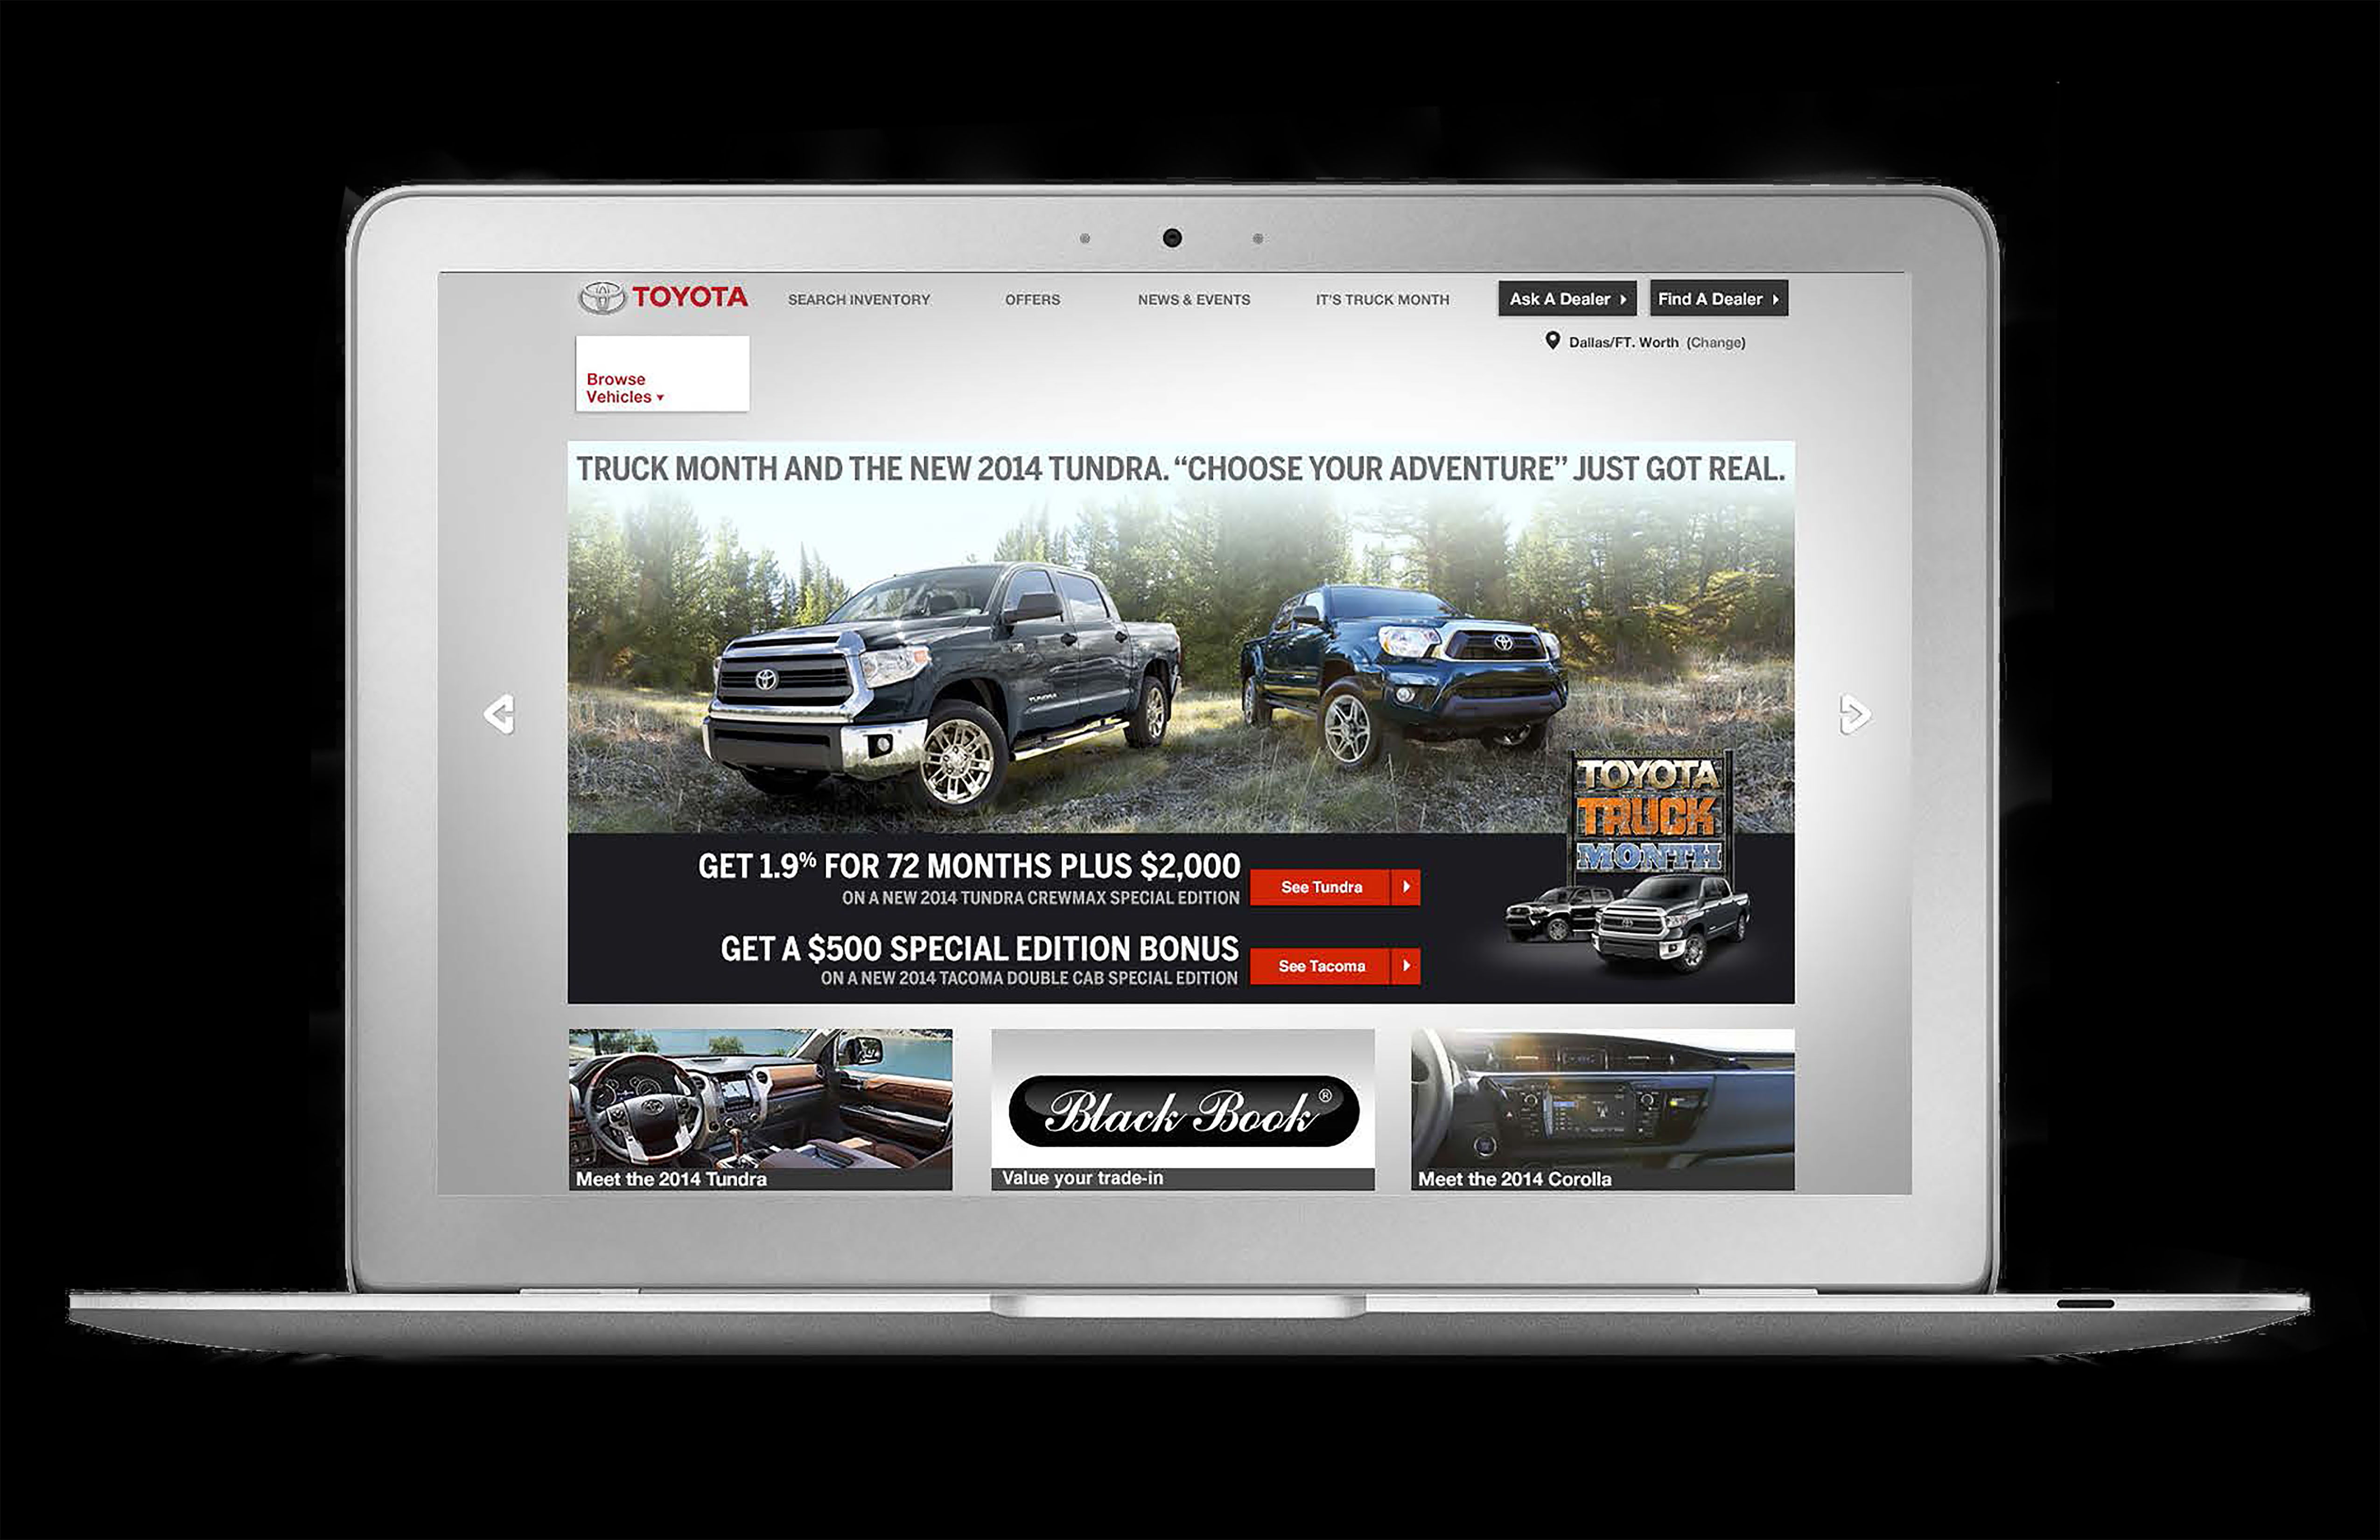 TOYOTA TRUCK MONTH LANDING PAGE